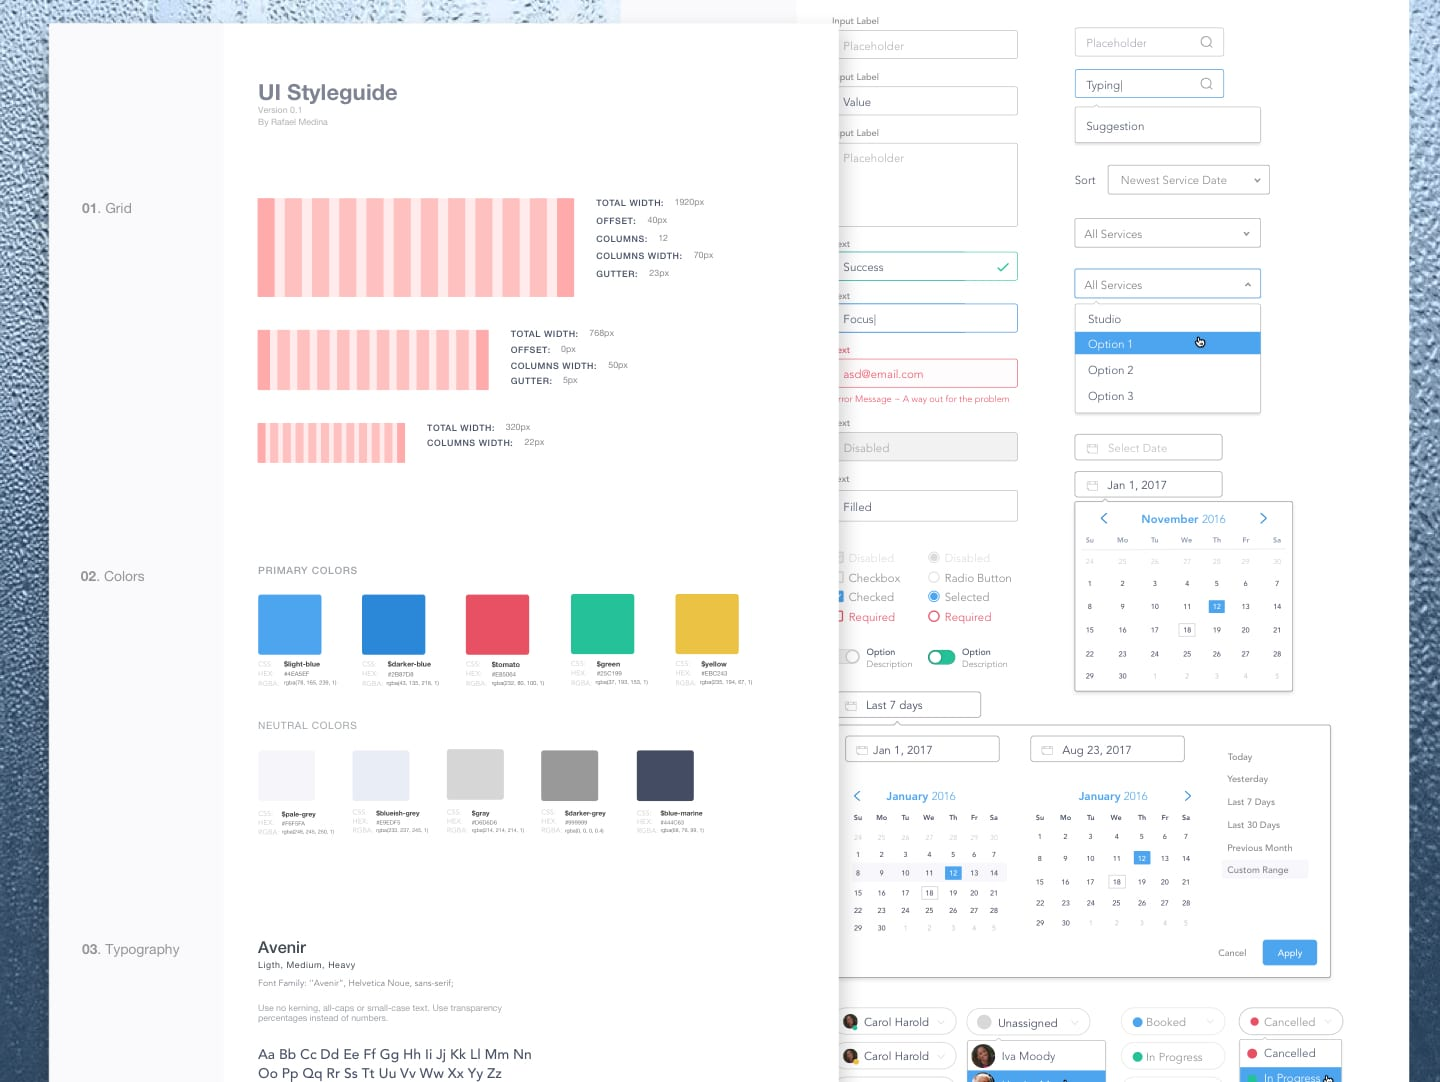 https://dribbble.com/shots/3304894-UI-Style-Guide-Cleaning-CRM-Dashboard